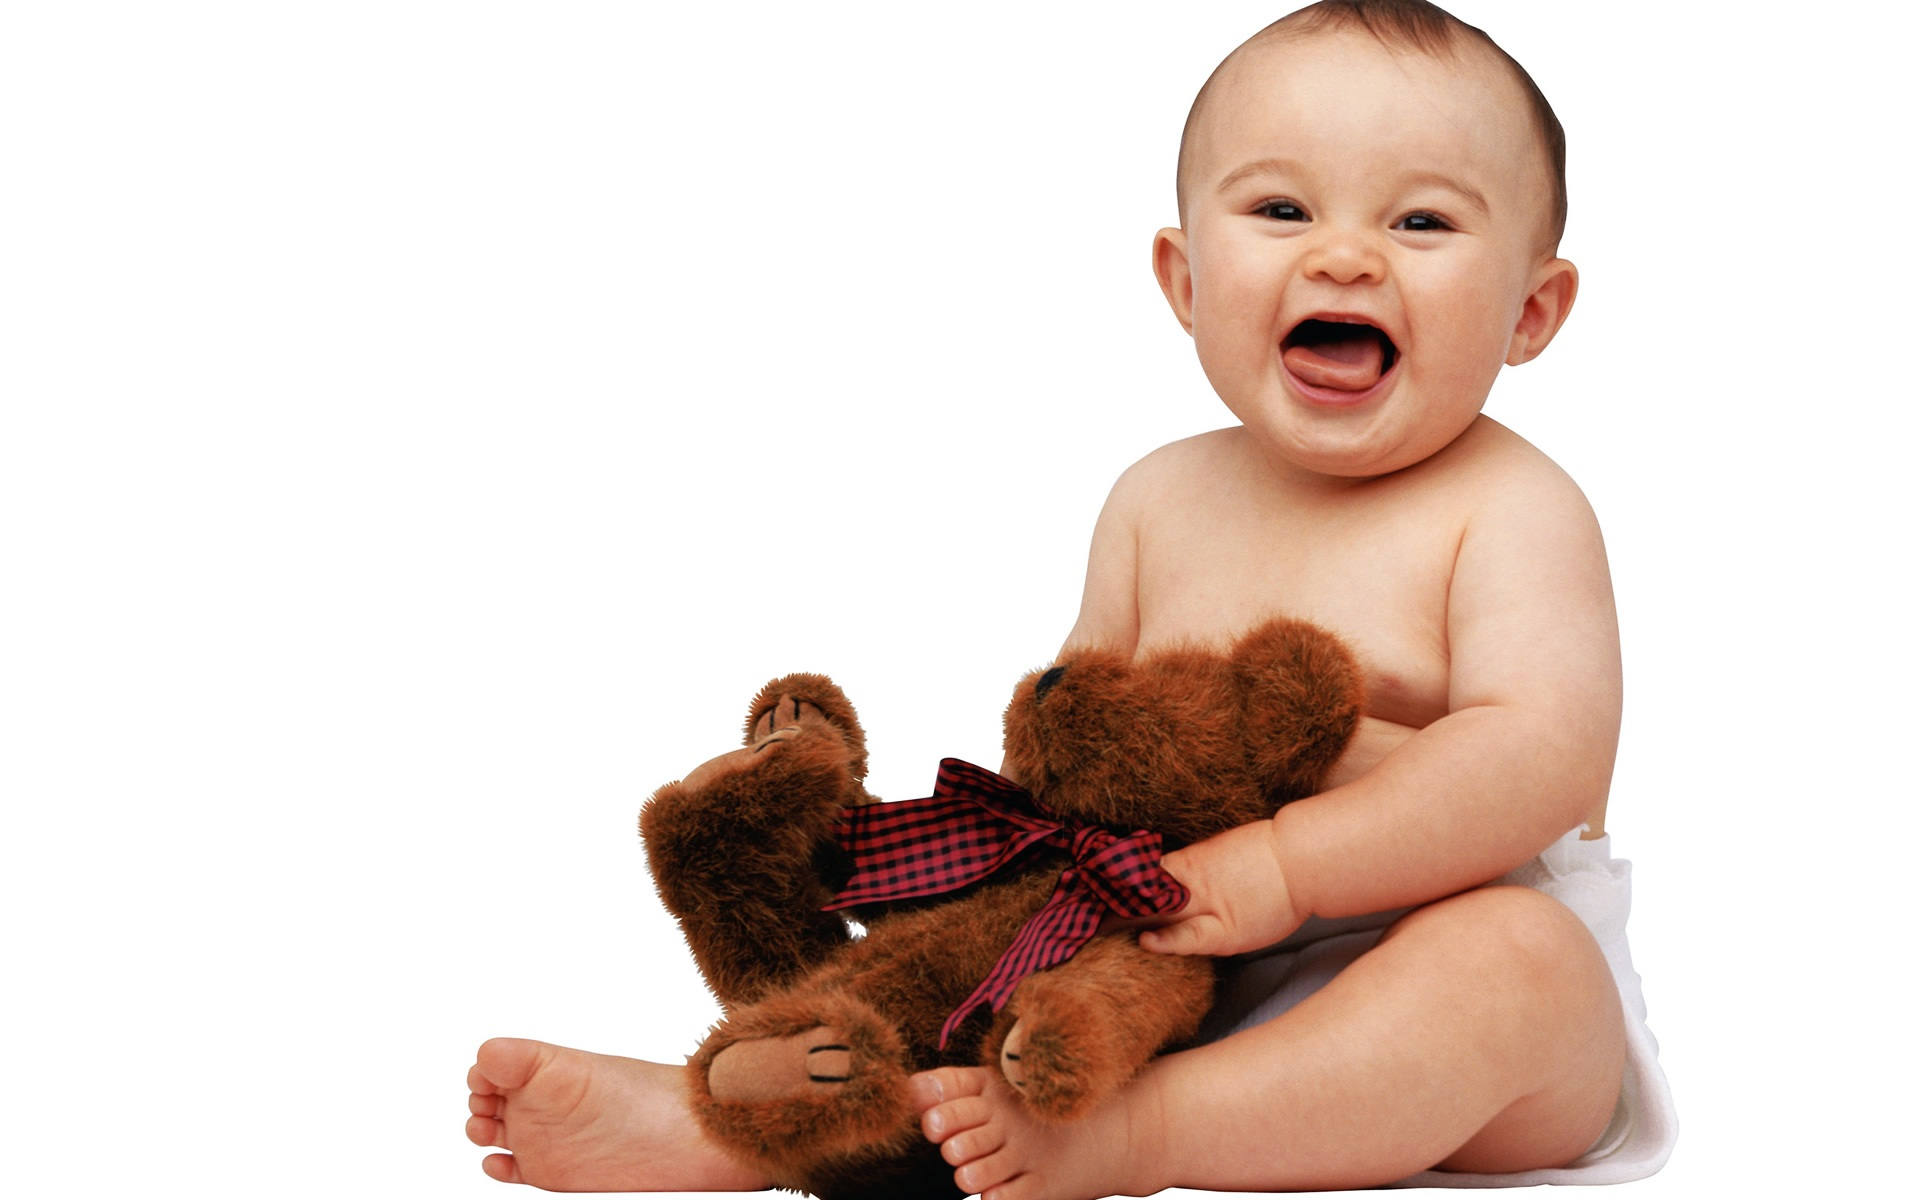 Cute Baby with Teddy Wallpapers HD Wallpapers 1920x1200